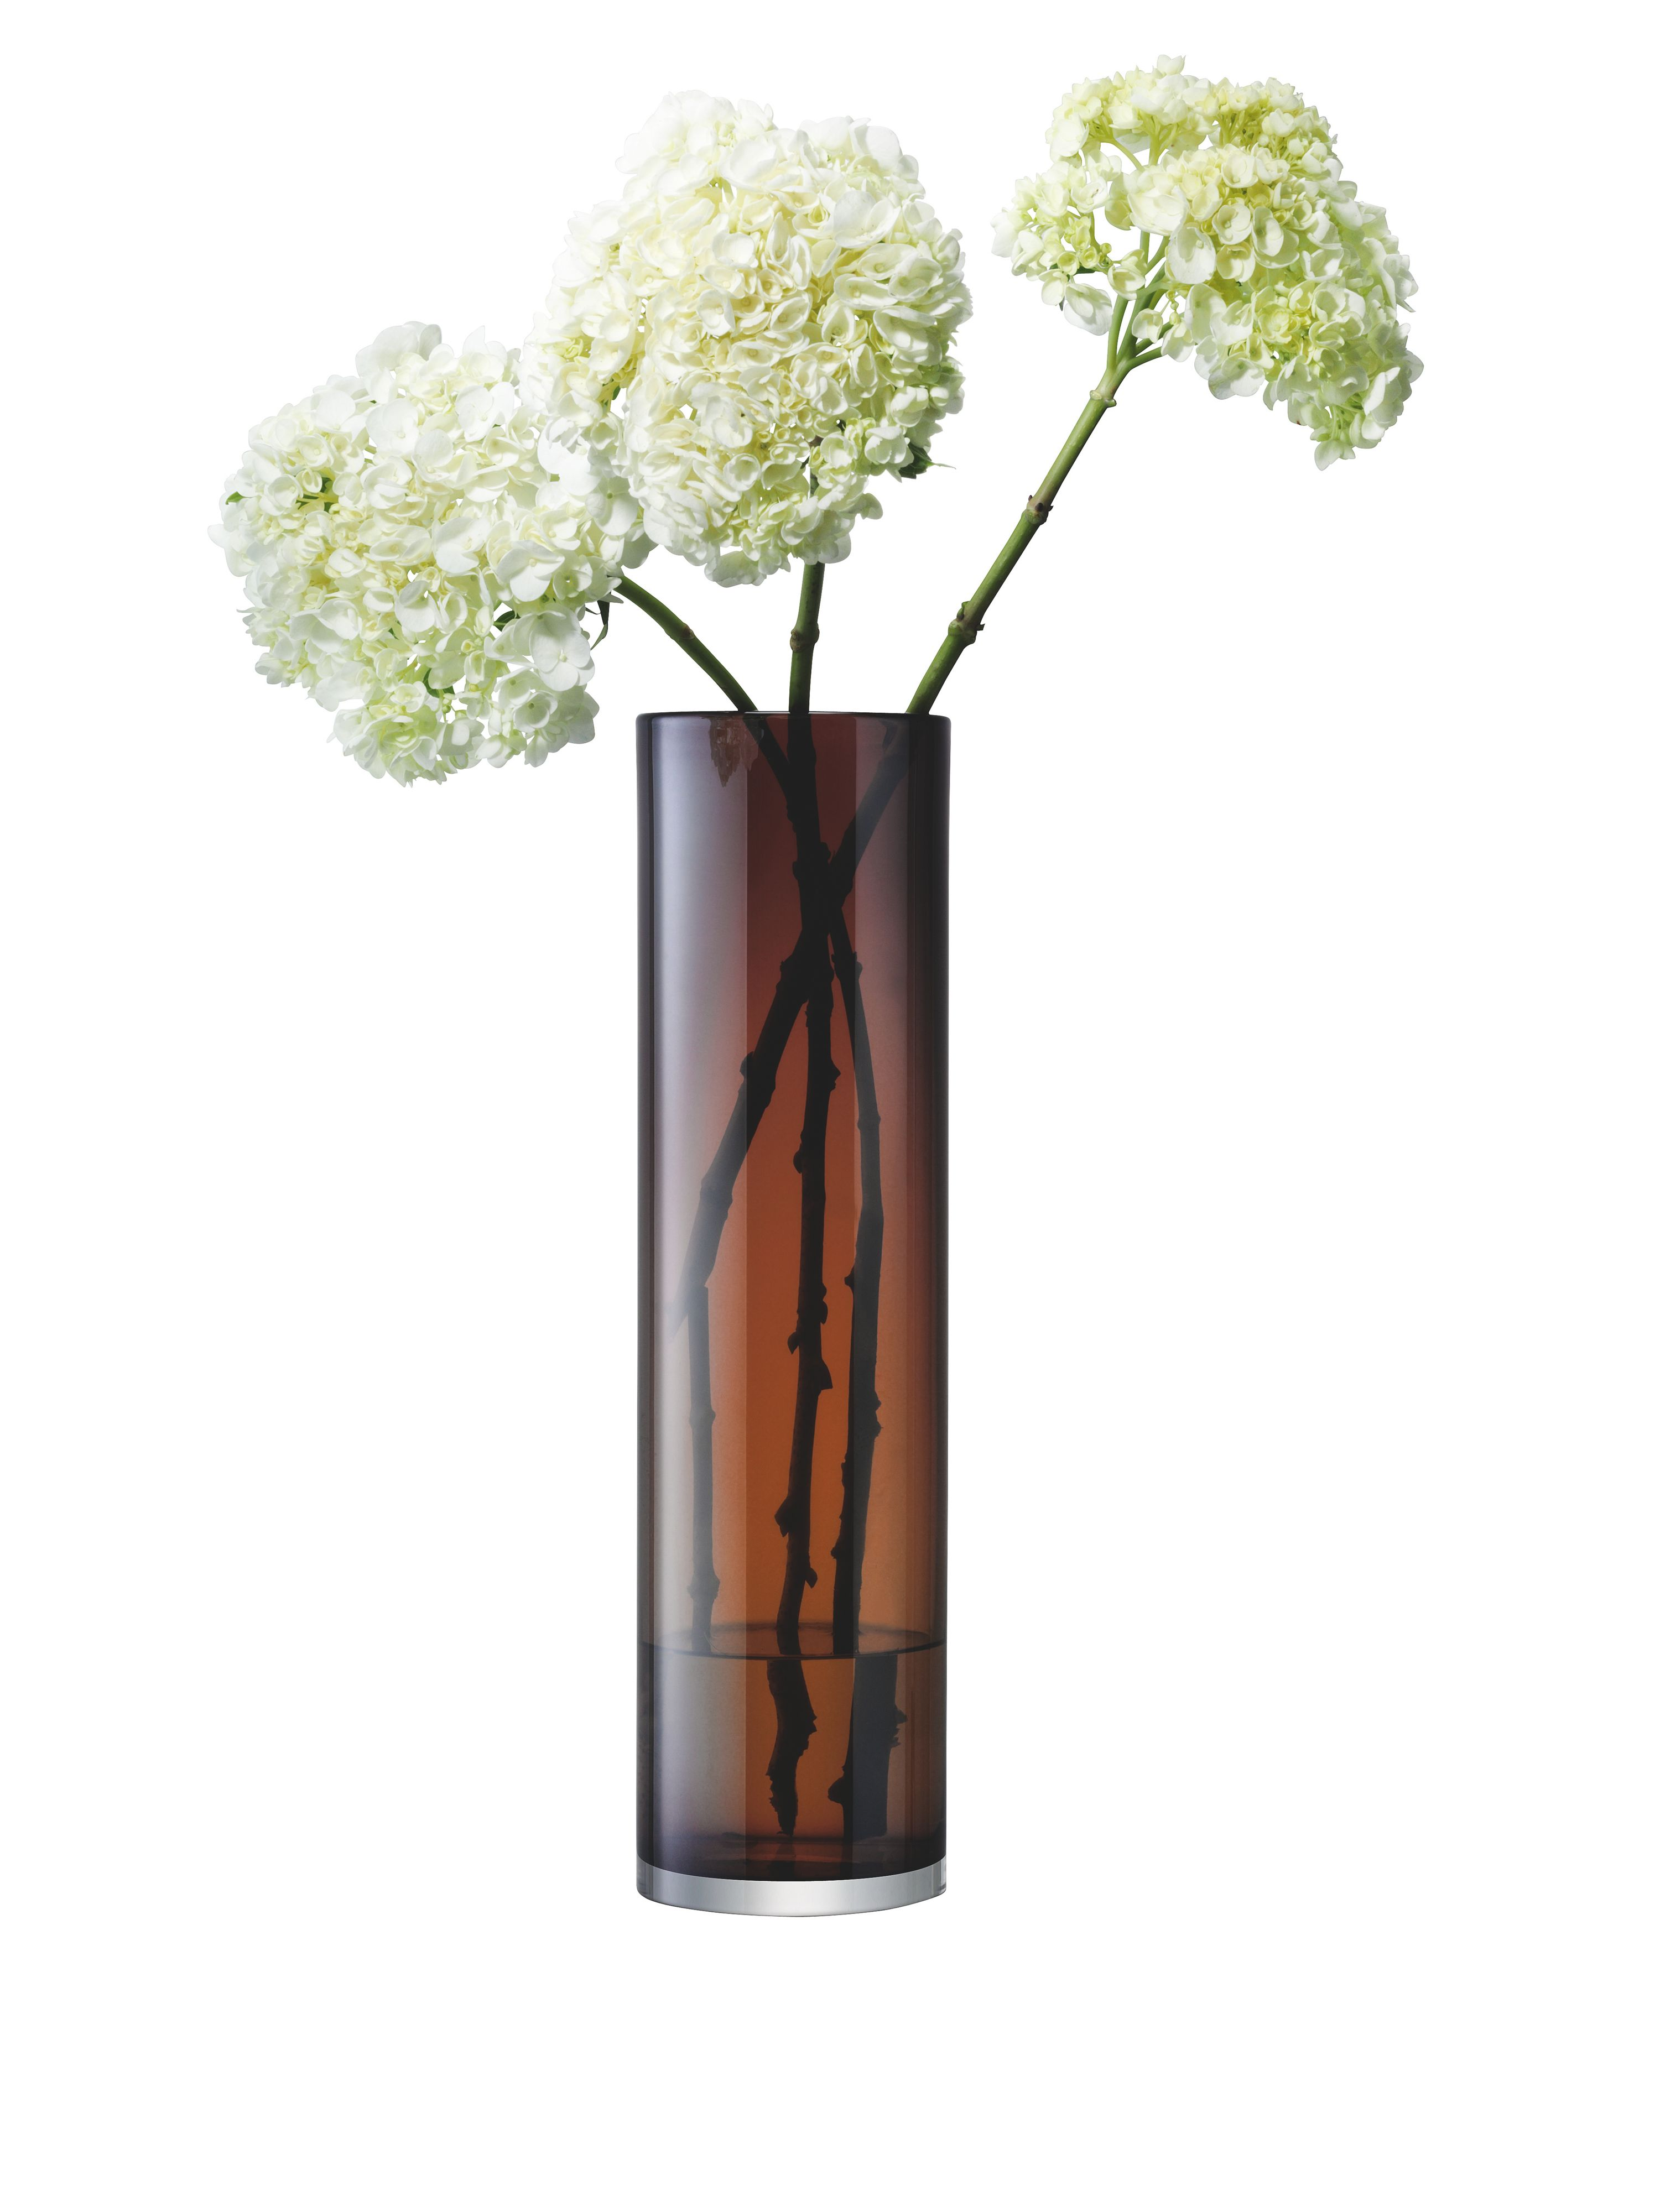 Inza vase, chocolate brown, 45cm